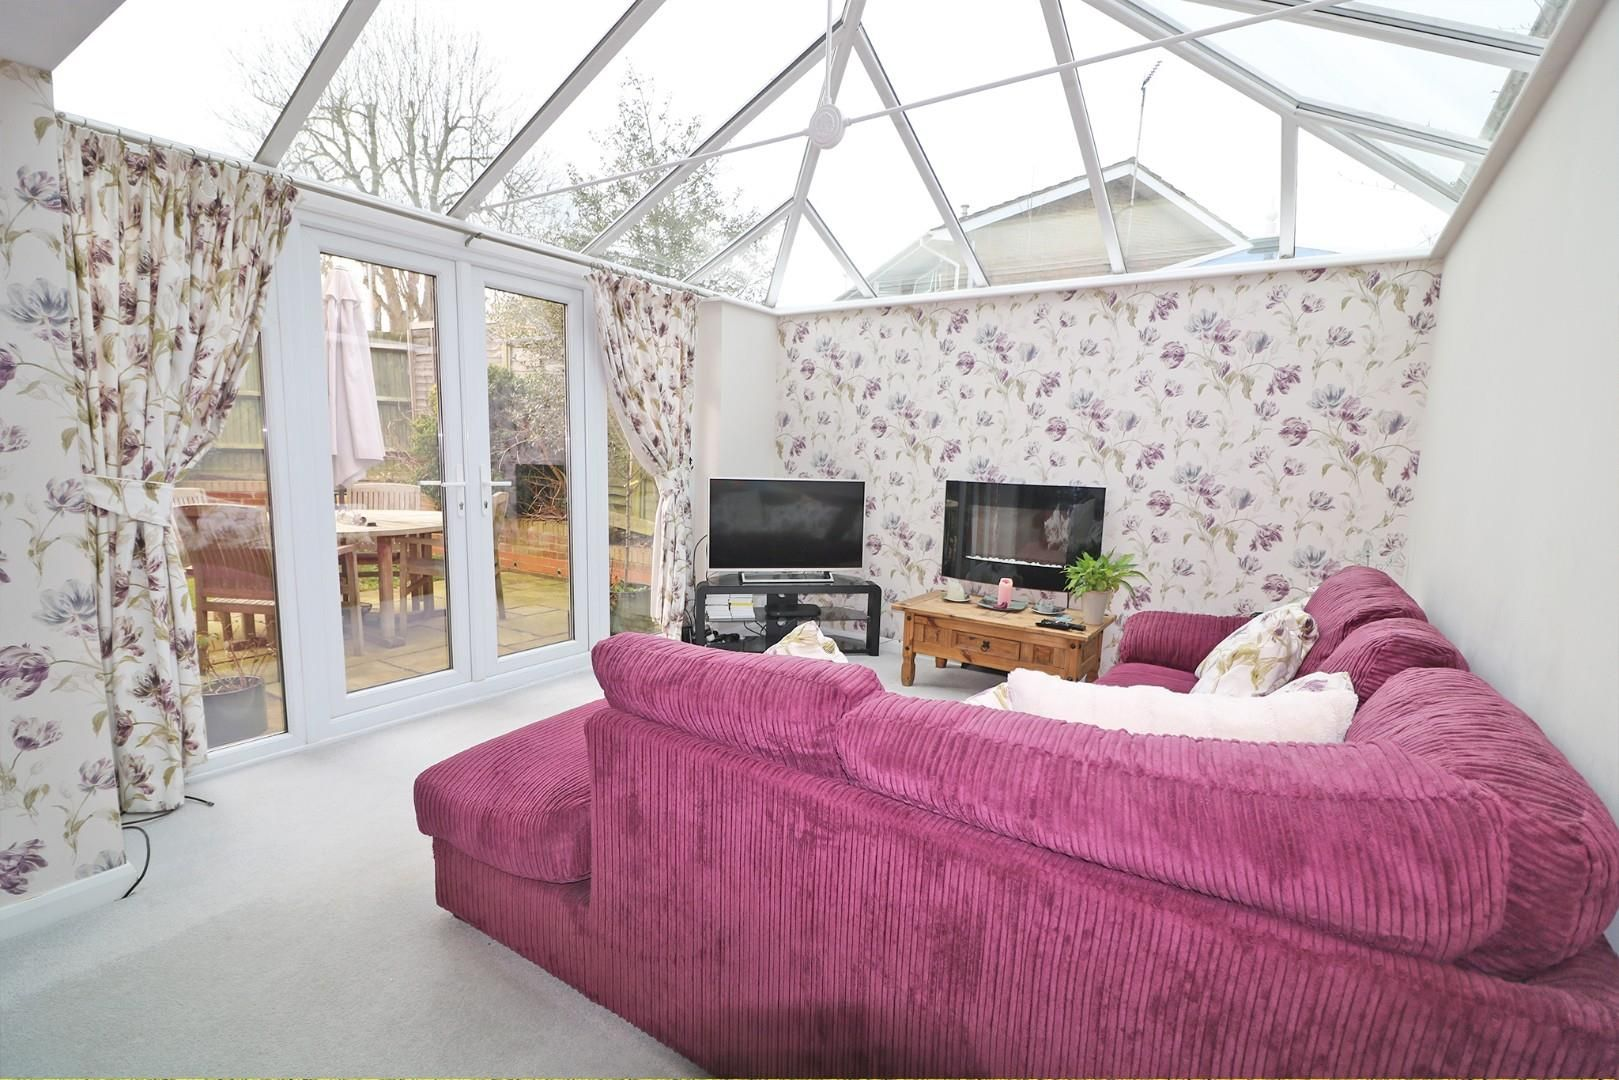 3 bed house for sale in Woodley  - Property Image 2